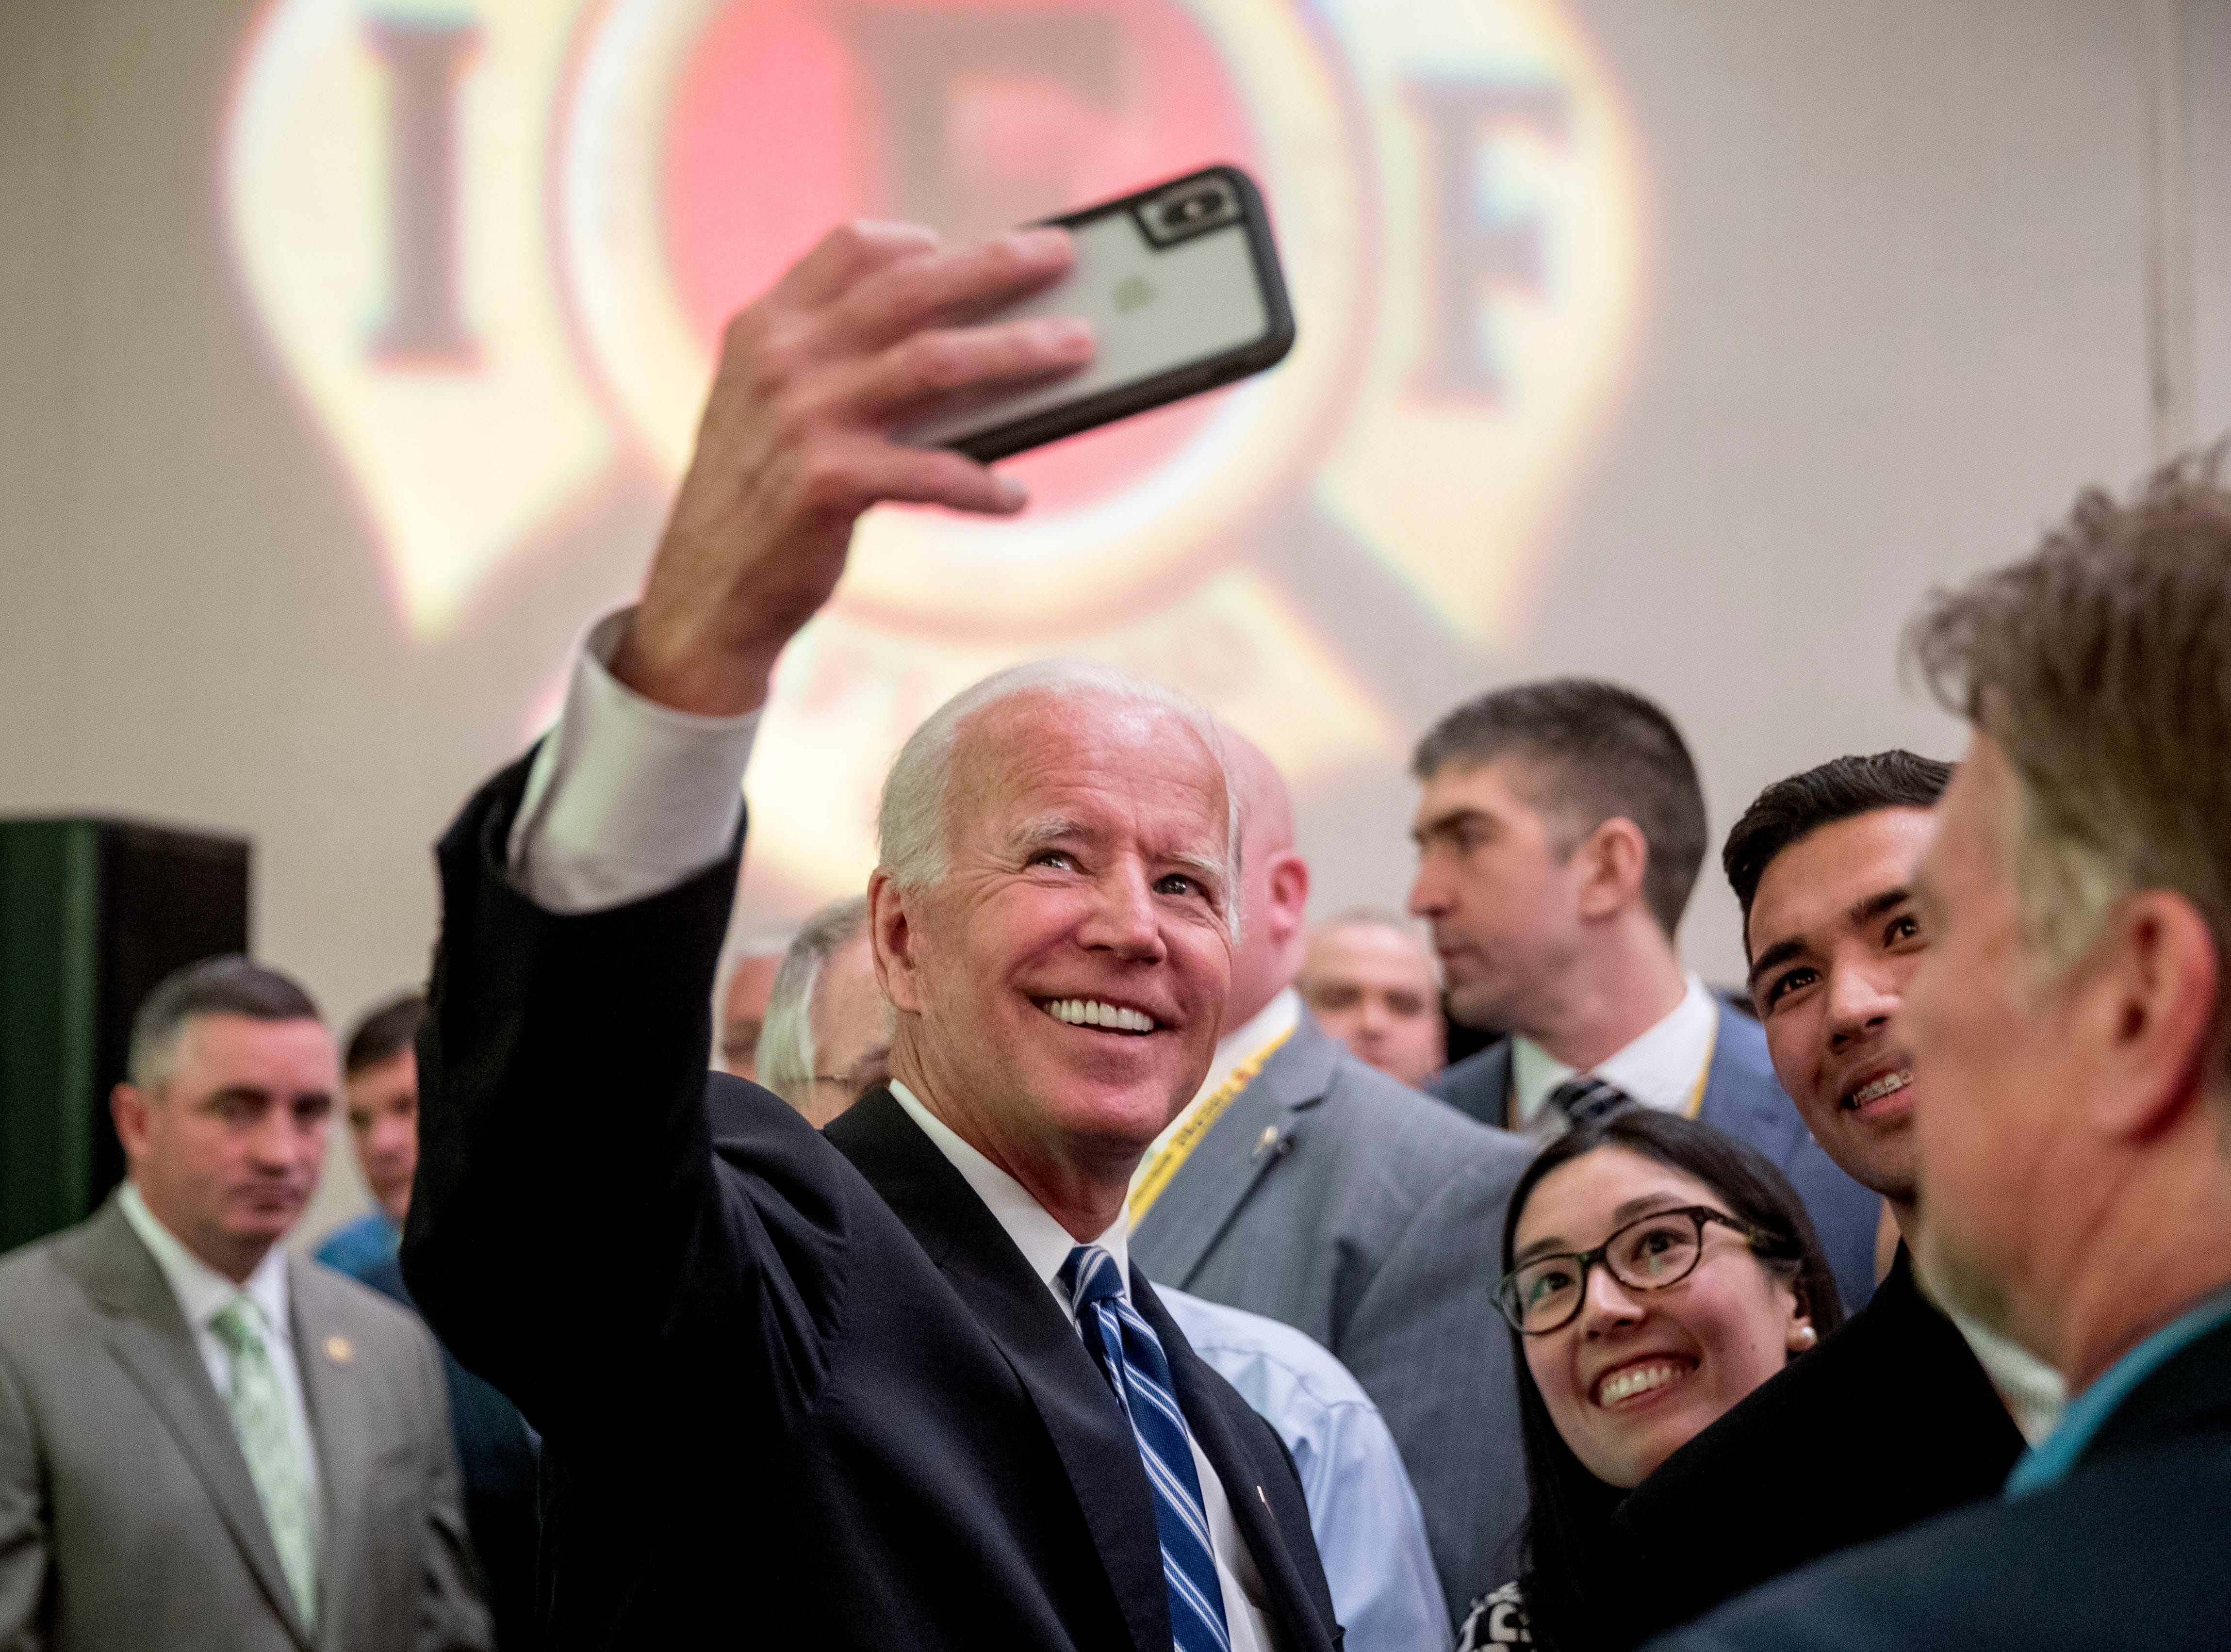 Former Vice President Joe Biden takes a photograph with members of the audience after speaking to the International Association of Firefighters at the Hyatt Regency on Capitol Hill in Washington, Tuesday, March 12, 2019, amid growing expectations he'll soon announce he's running for president.